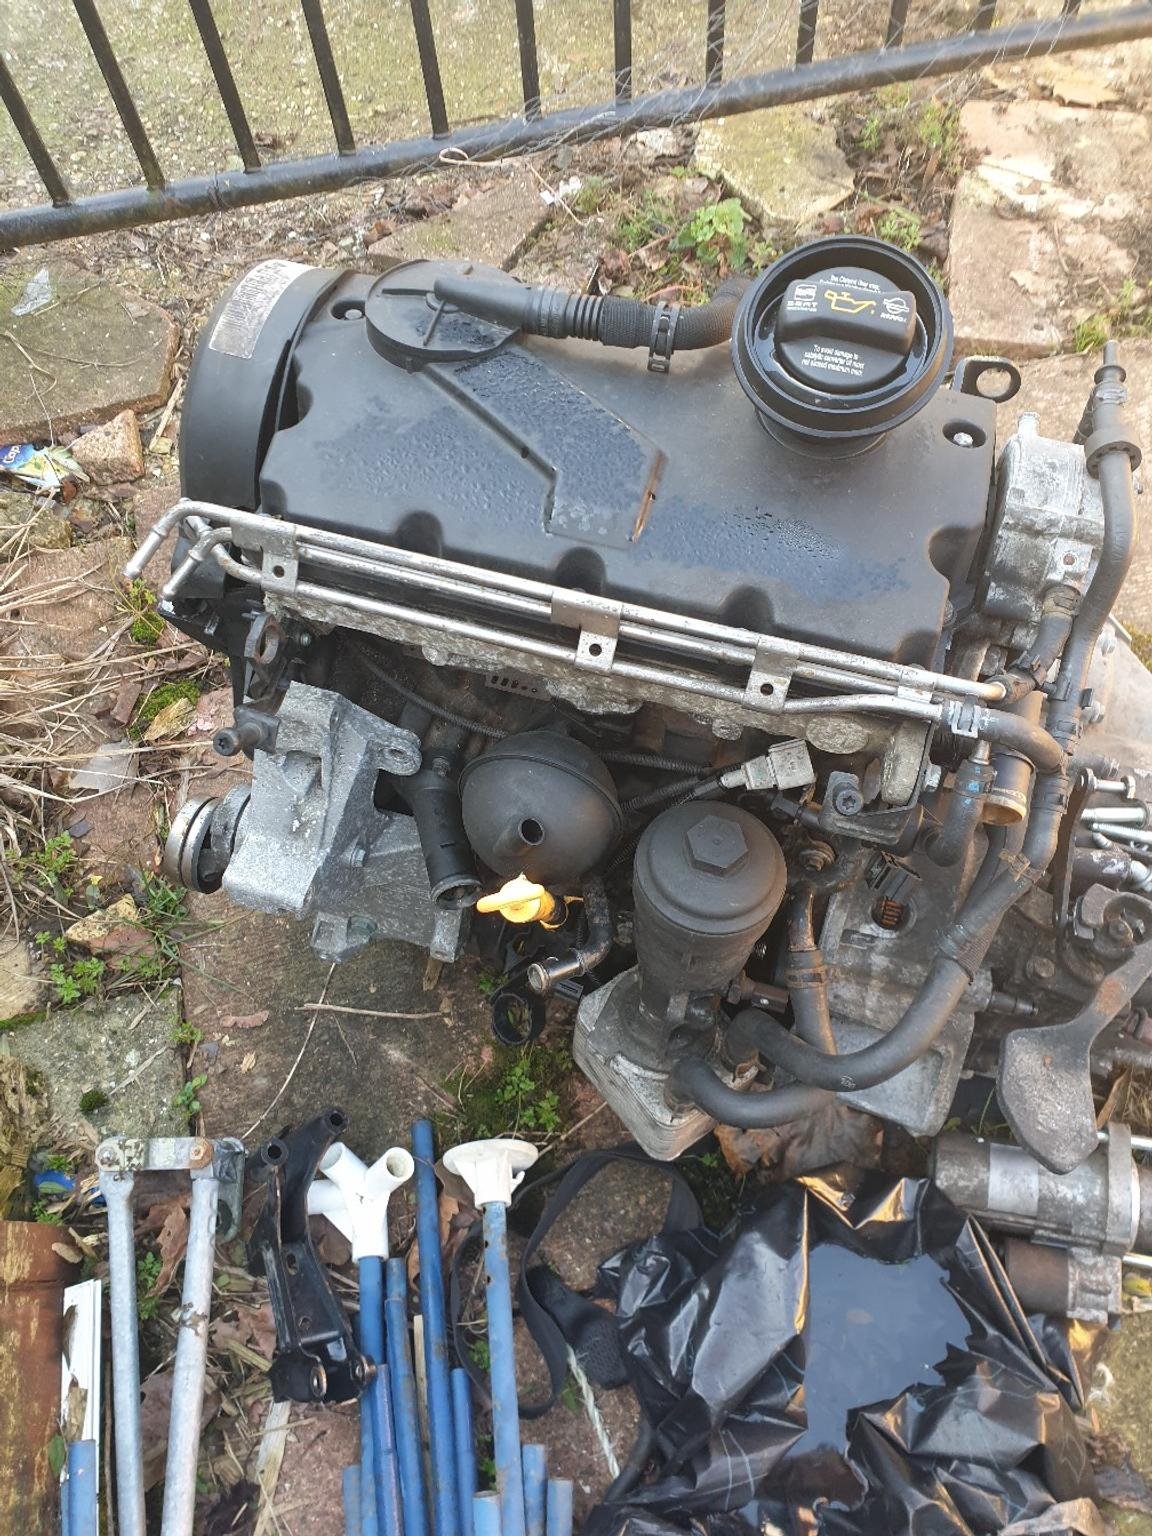 PD130 engine and gearbox asz